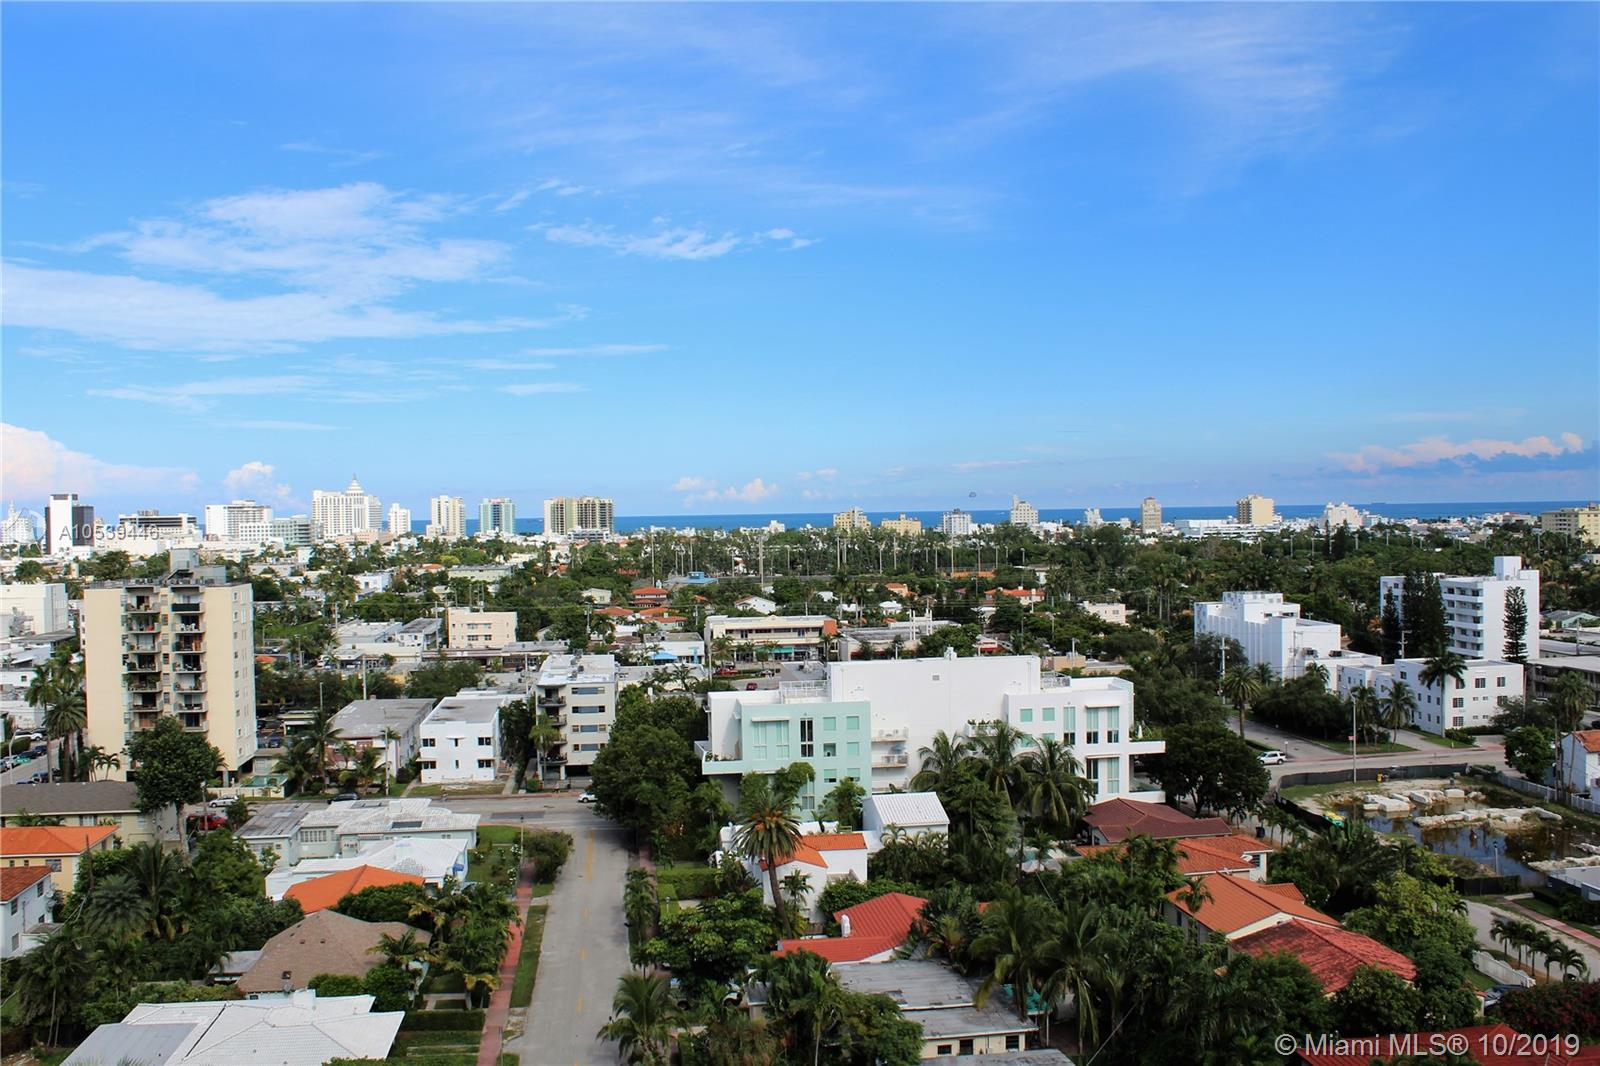 Flamingo South Beach #1480S - 1500 Bay Rd #1480S, Miami Beach, FL 33139